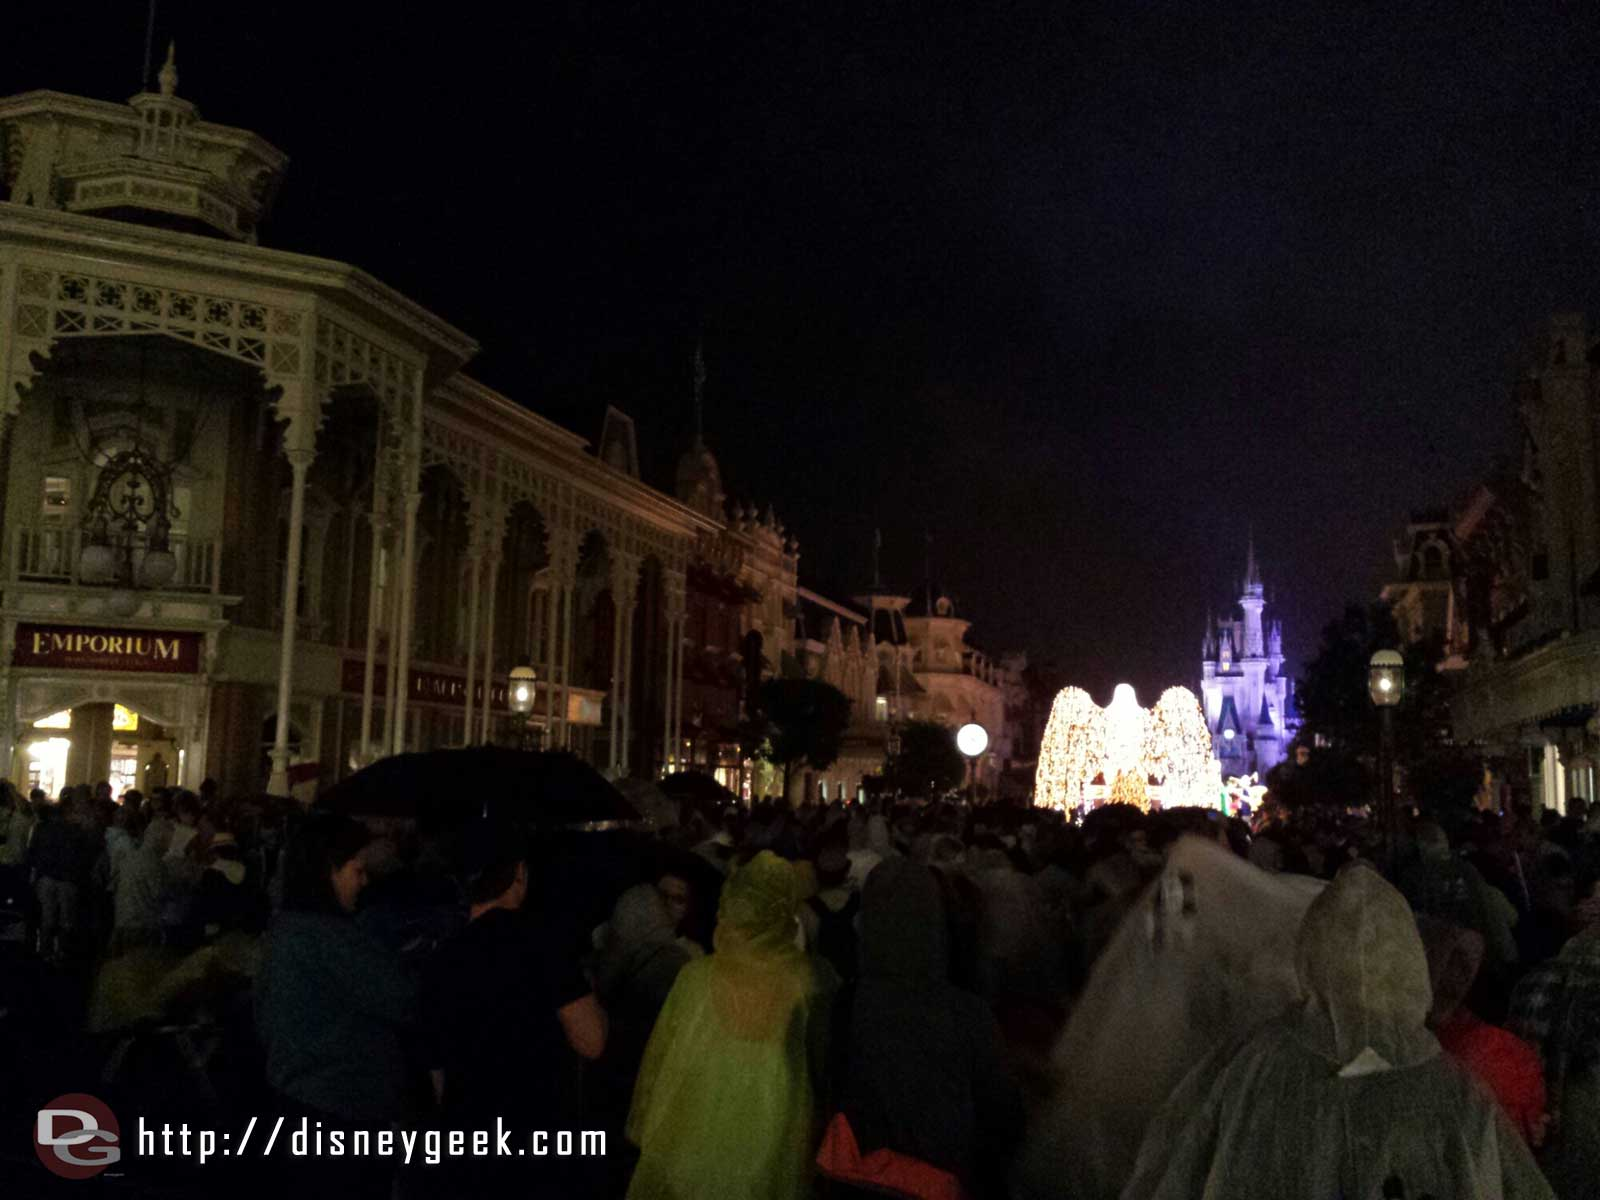 As the parade moved onto Main Street the rain picked up.